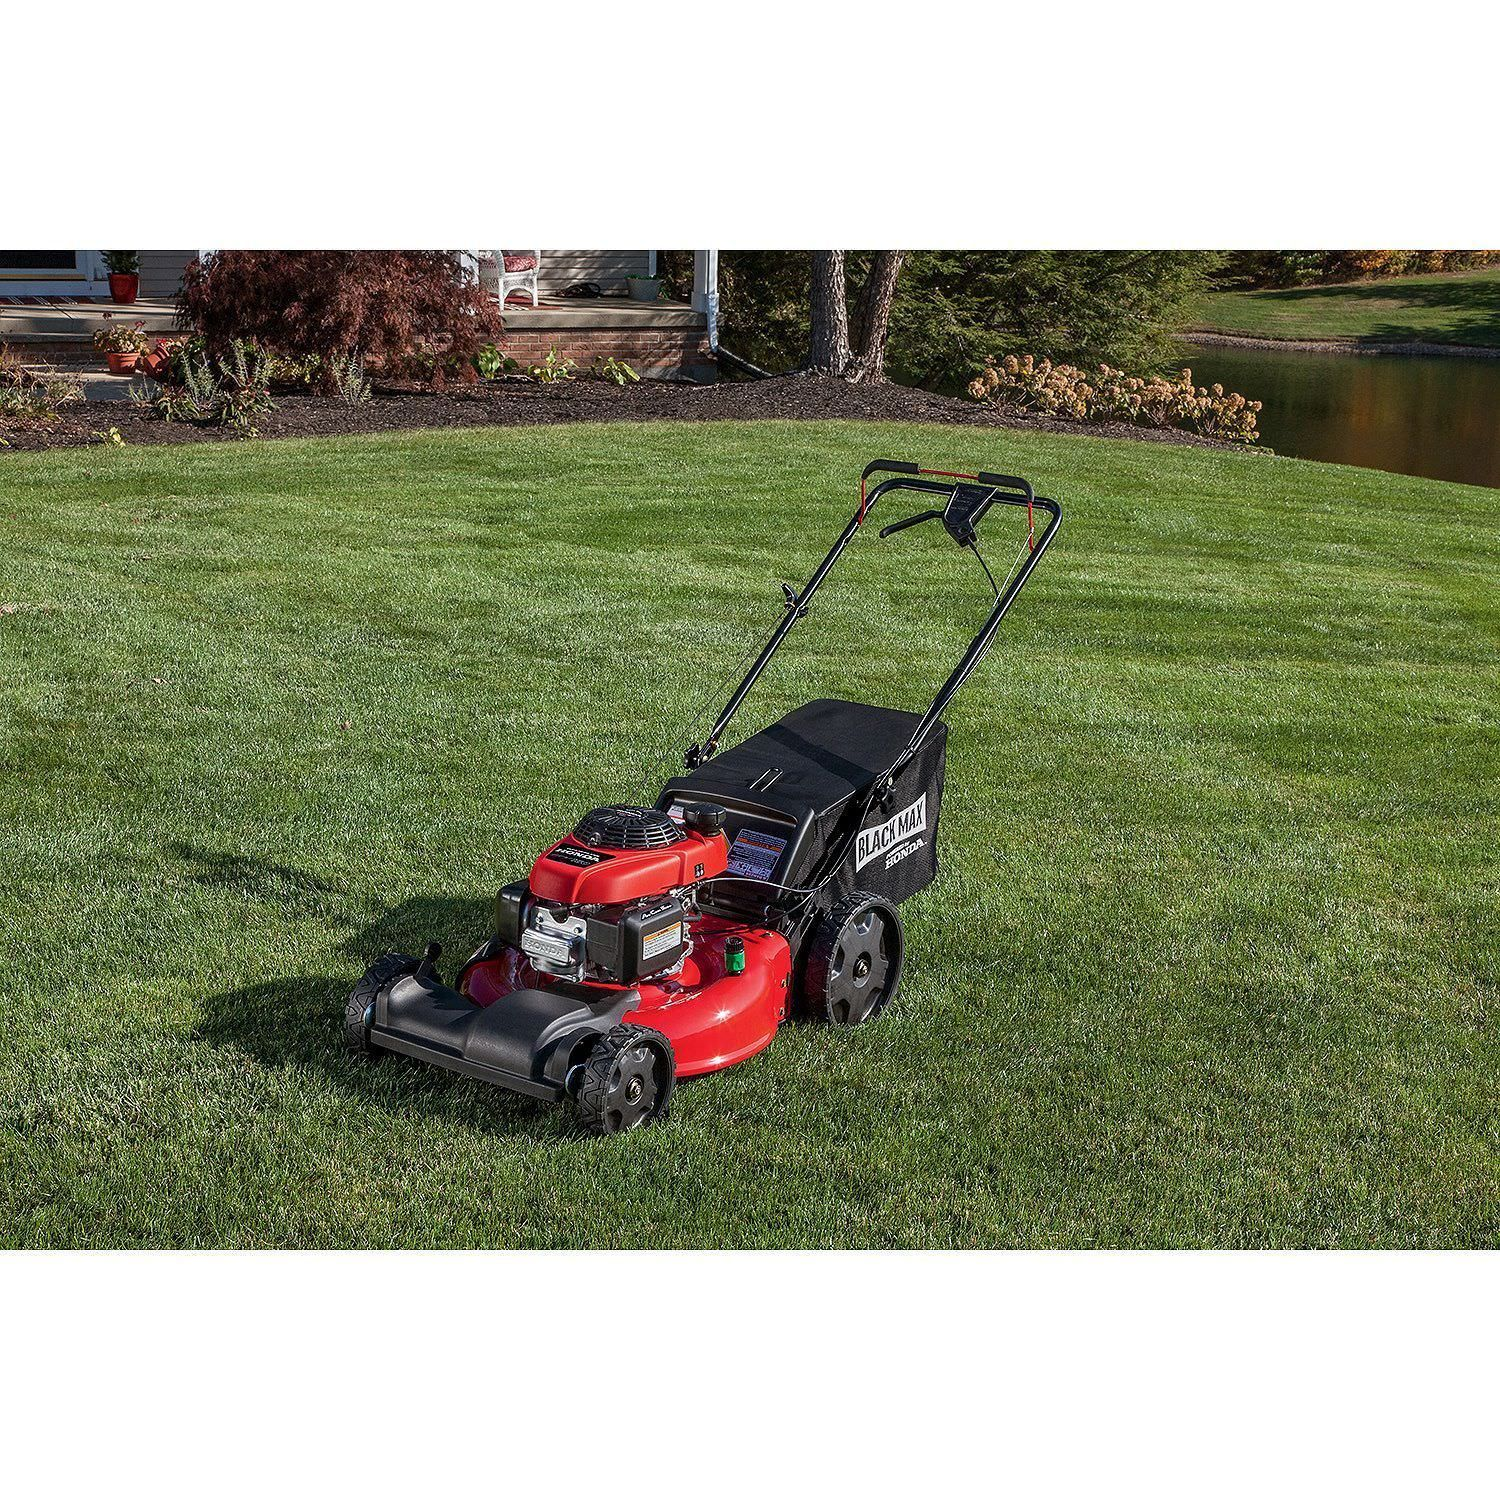 Black Max 21 Inch 160cc Front Wheel Drive Walk Behind Mower Powered By Honda 756250426656 Ebay Honda Sales Walk Behind Mower Mower